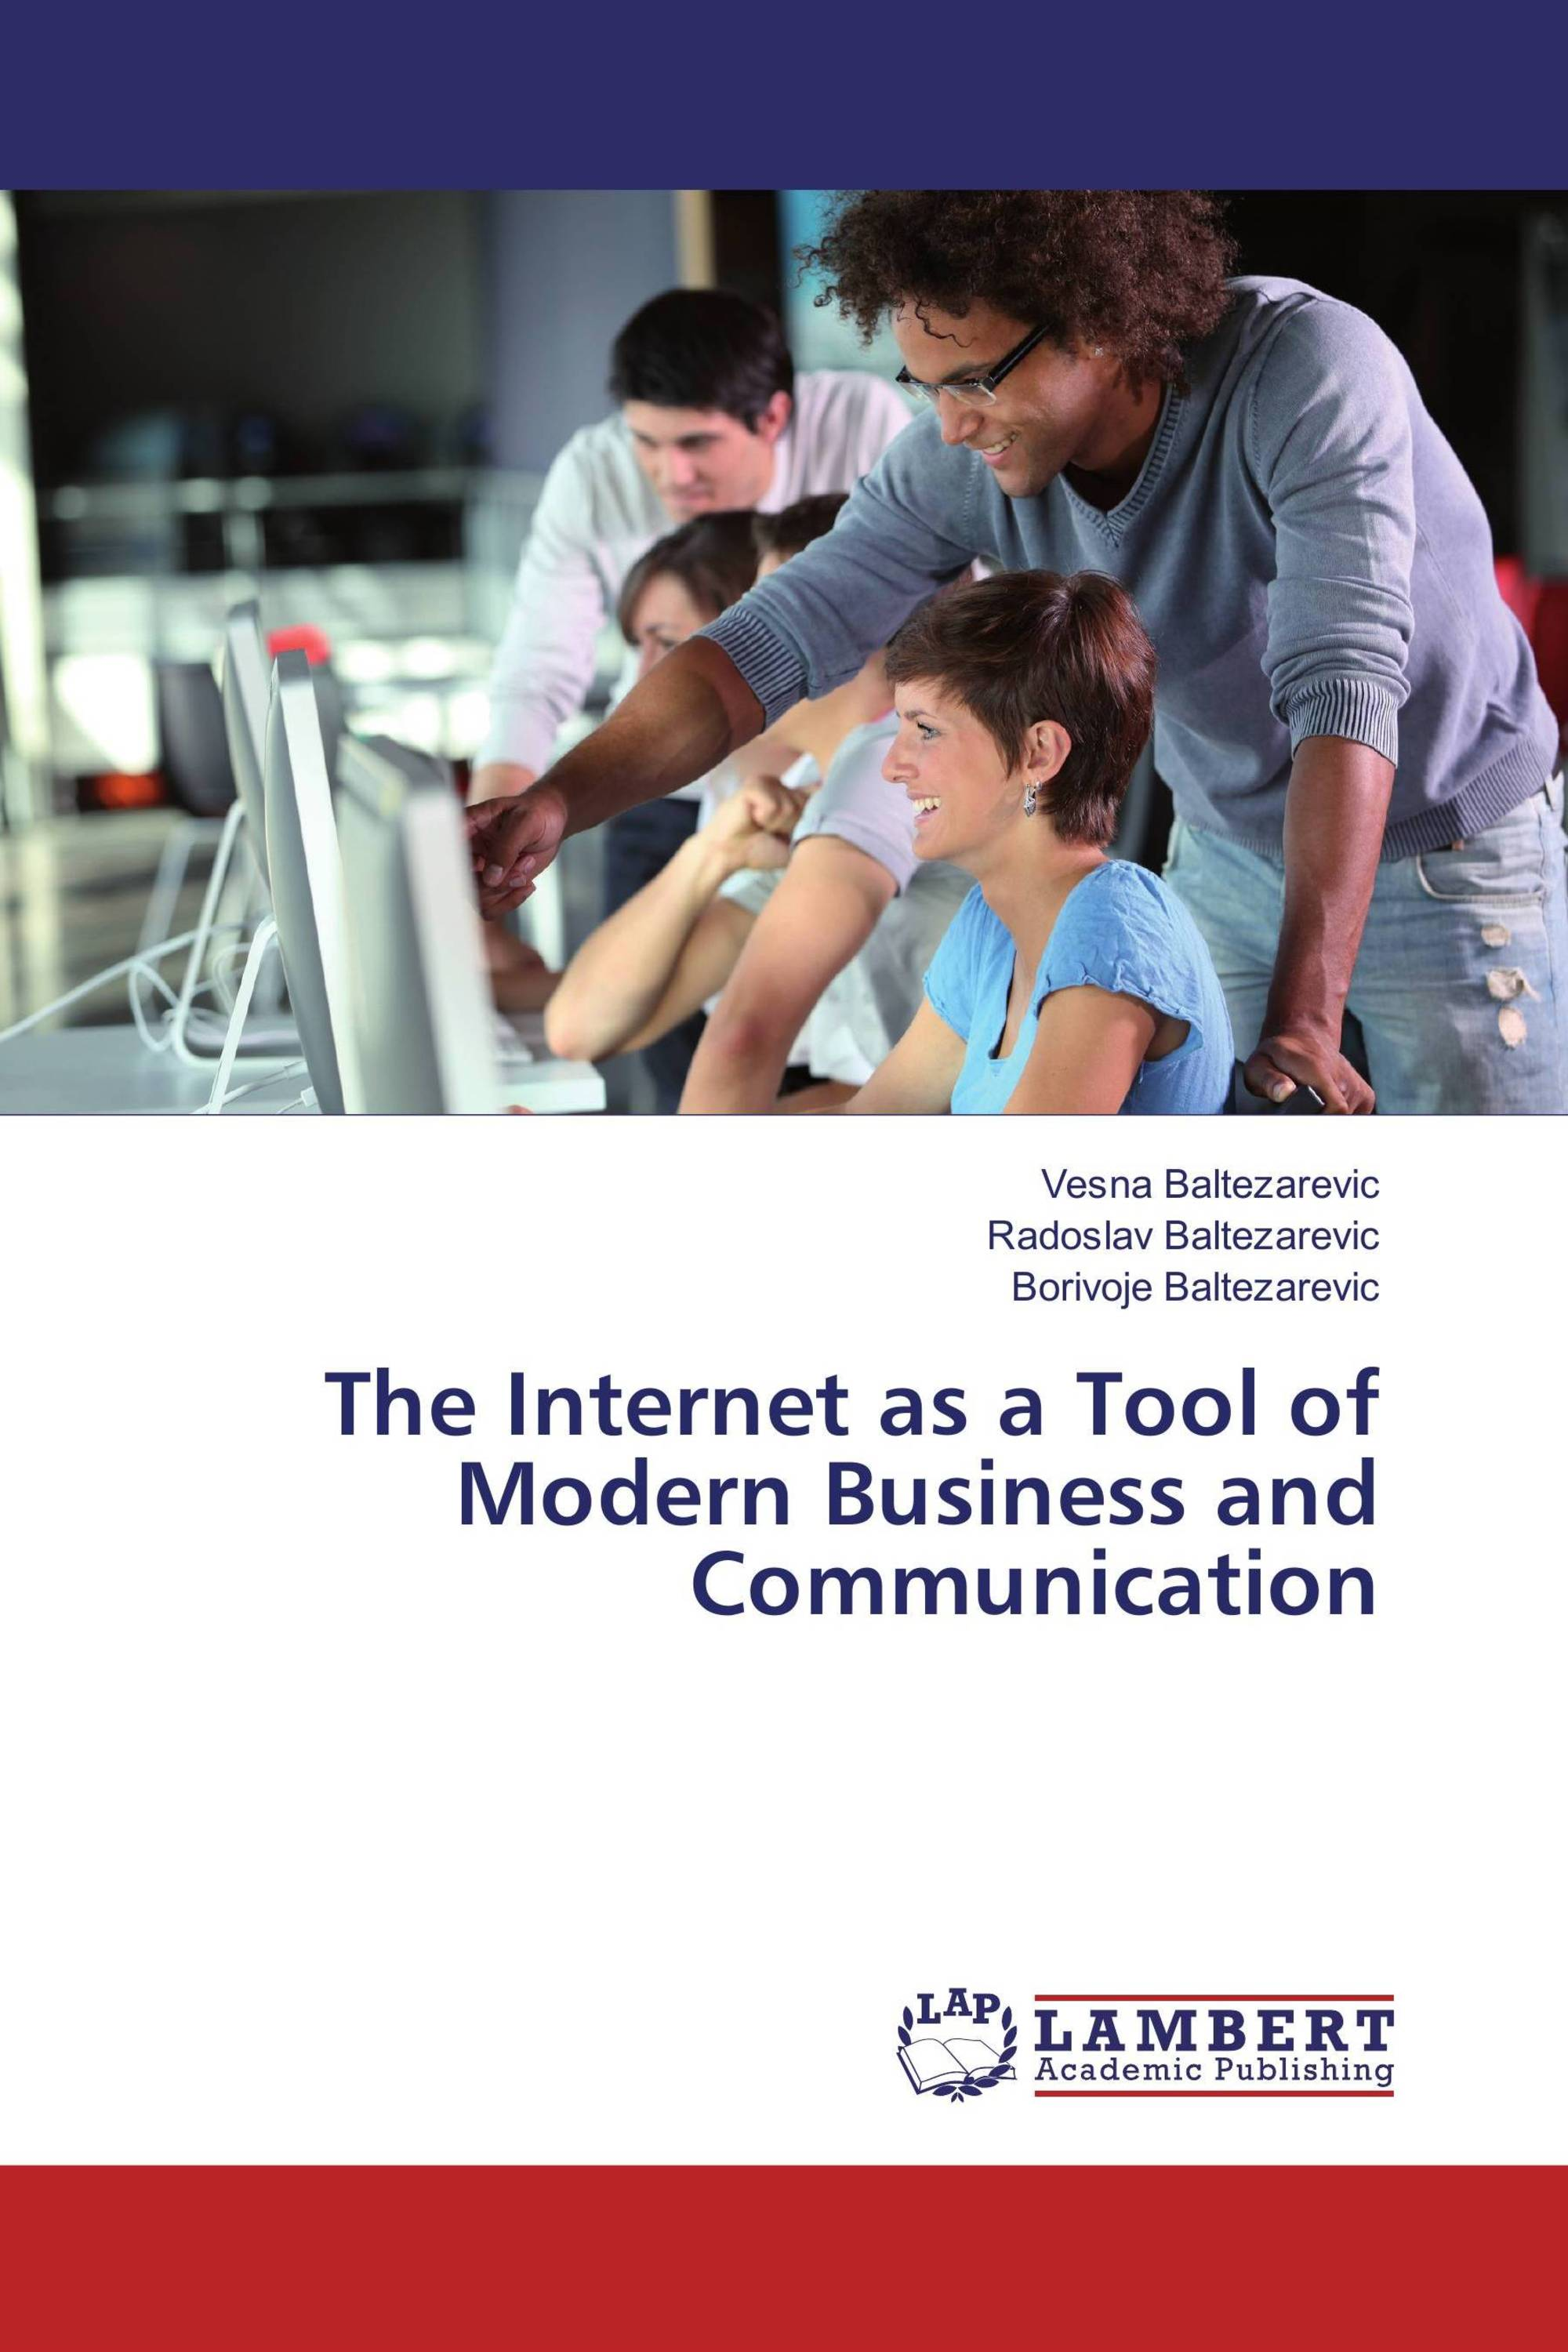 The Internet as a Tool of Modern Business and Communication